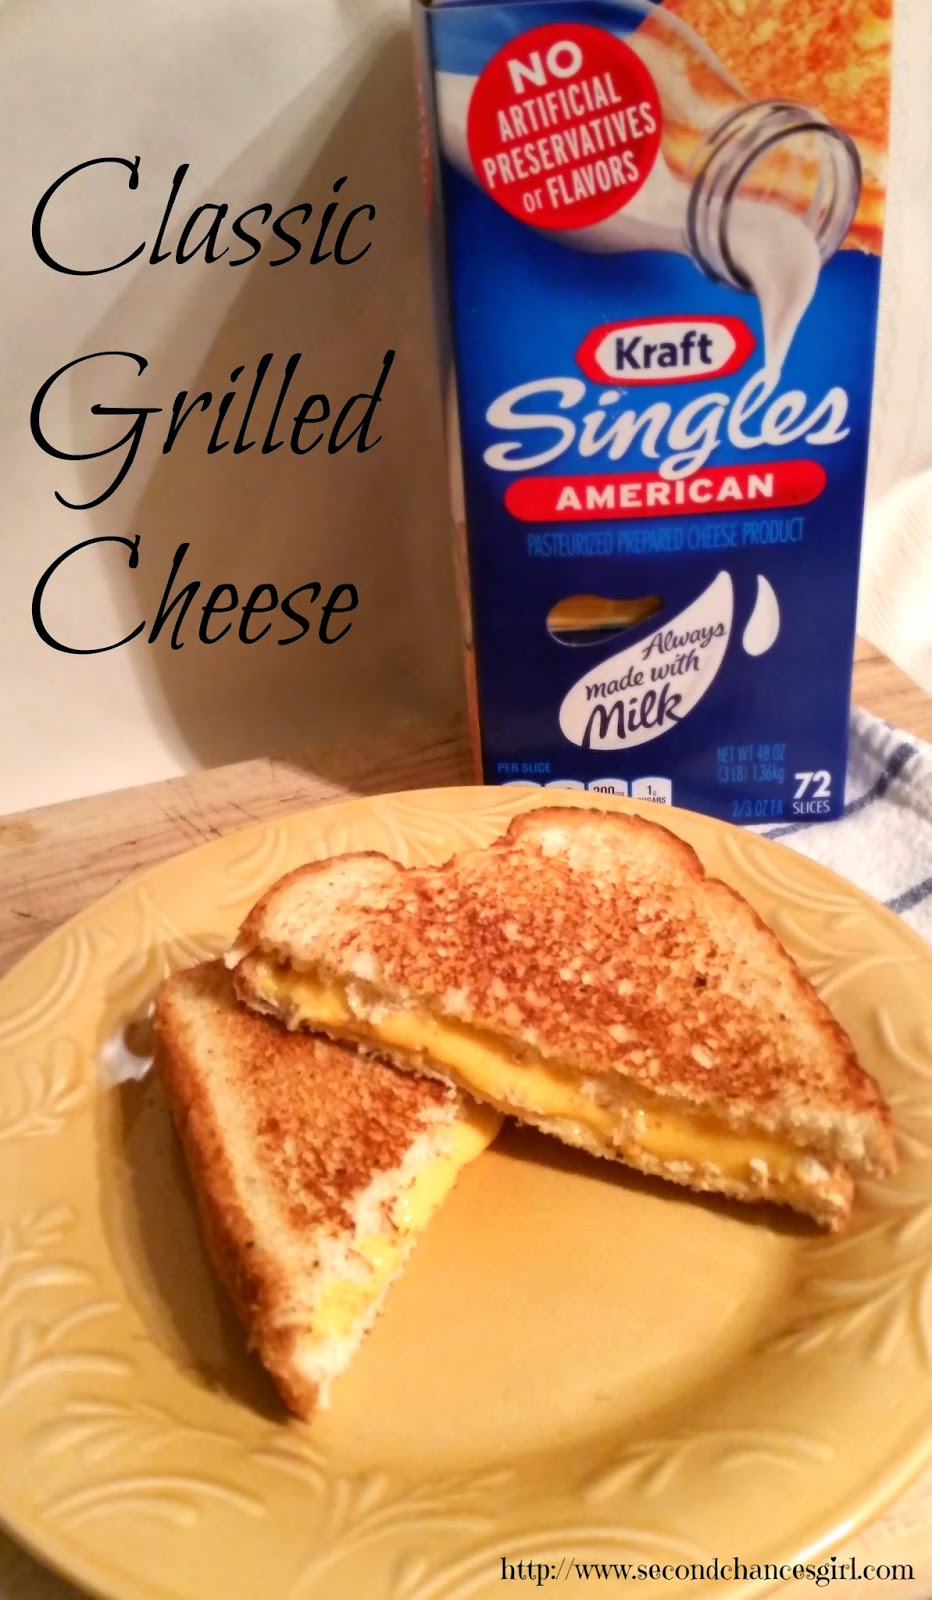 Classic Grilled Cheese #ComidasFaciles #shop